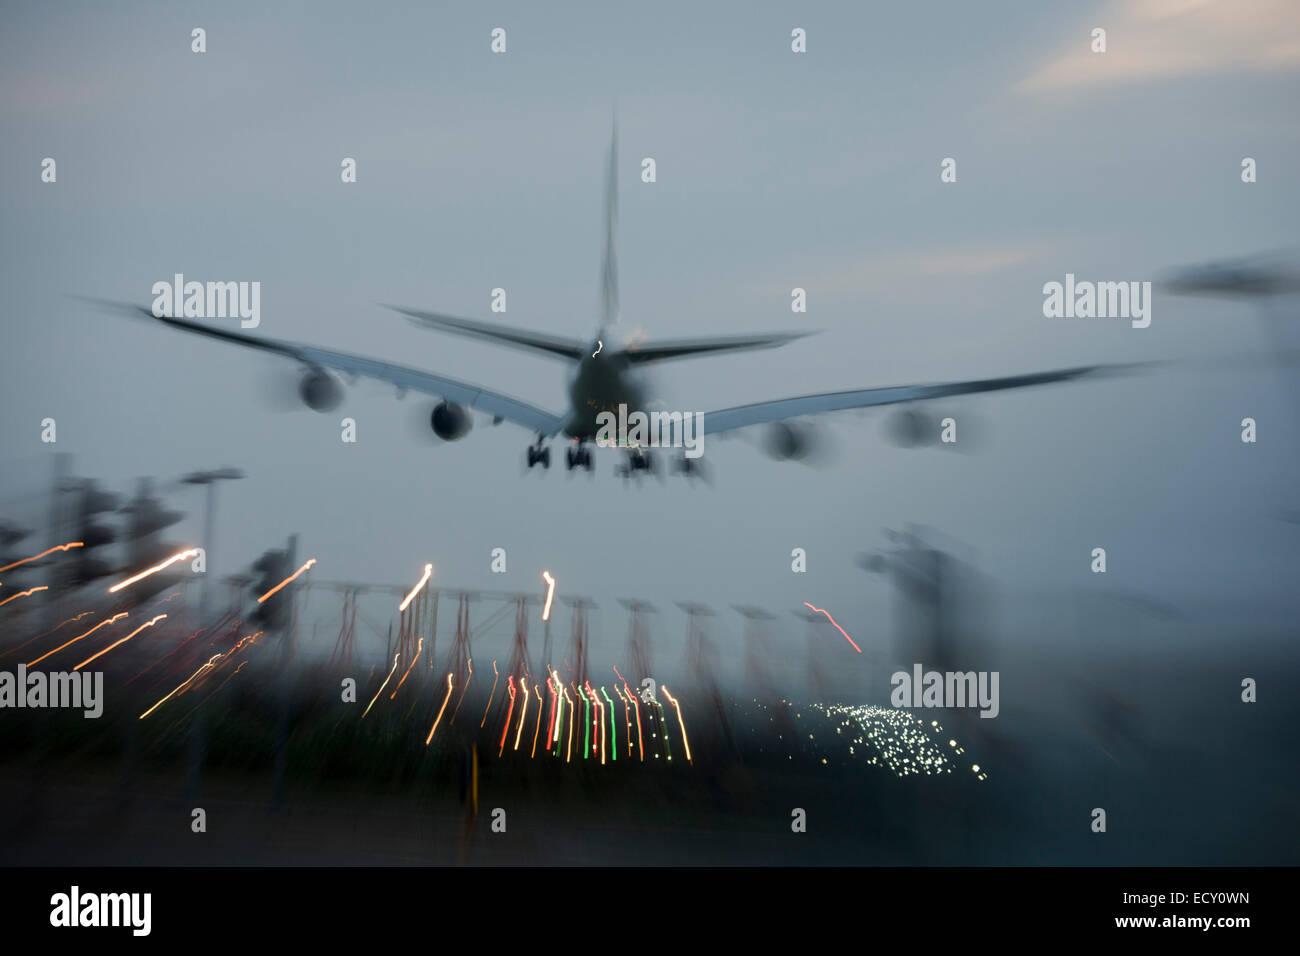 With bright landing lights on, blurred jet airliner lands at London Heathrow airport. - Stock Image